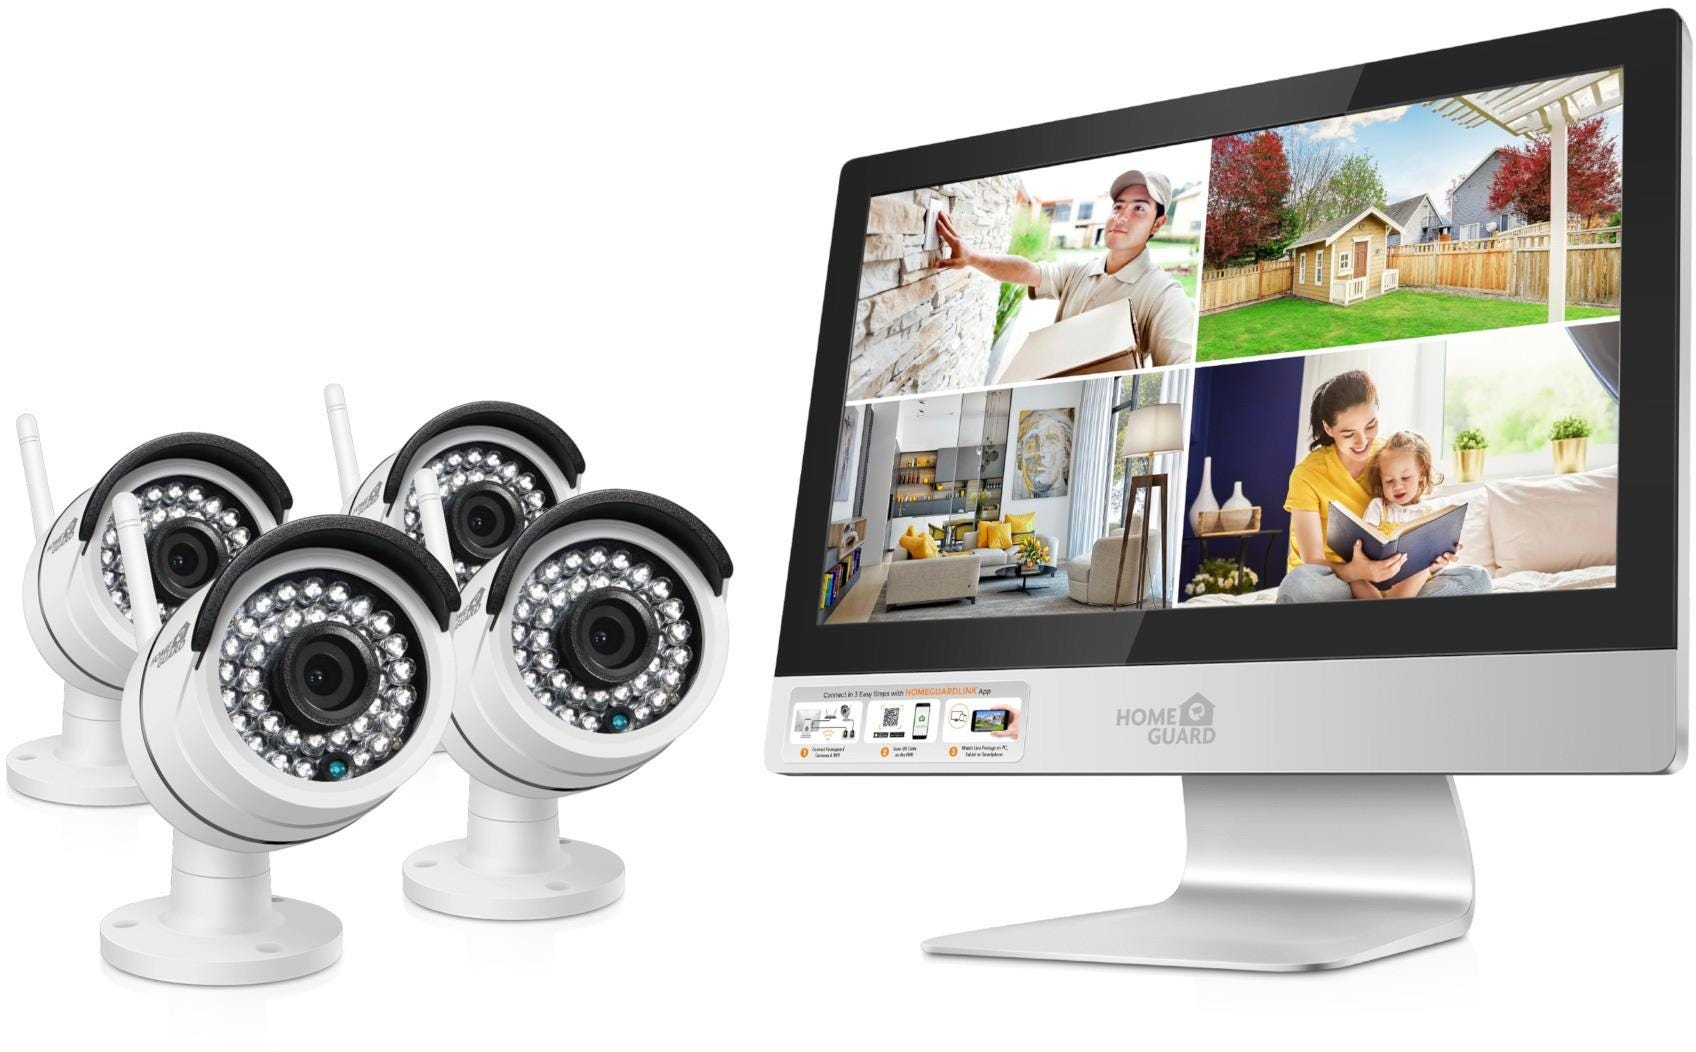 HomeGuard HGNVK-49004 Indoor / Outdoor Wireless HD Night-Vision 4-Channel IP NVR Monitor Kit with 4 Cameras - White